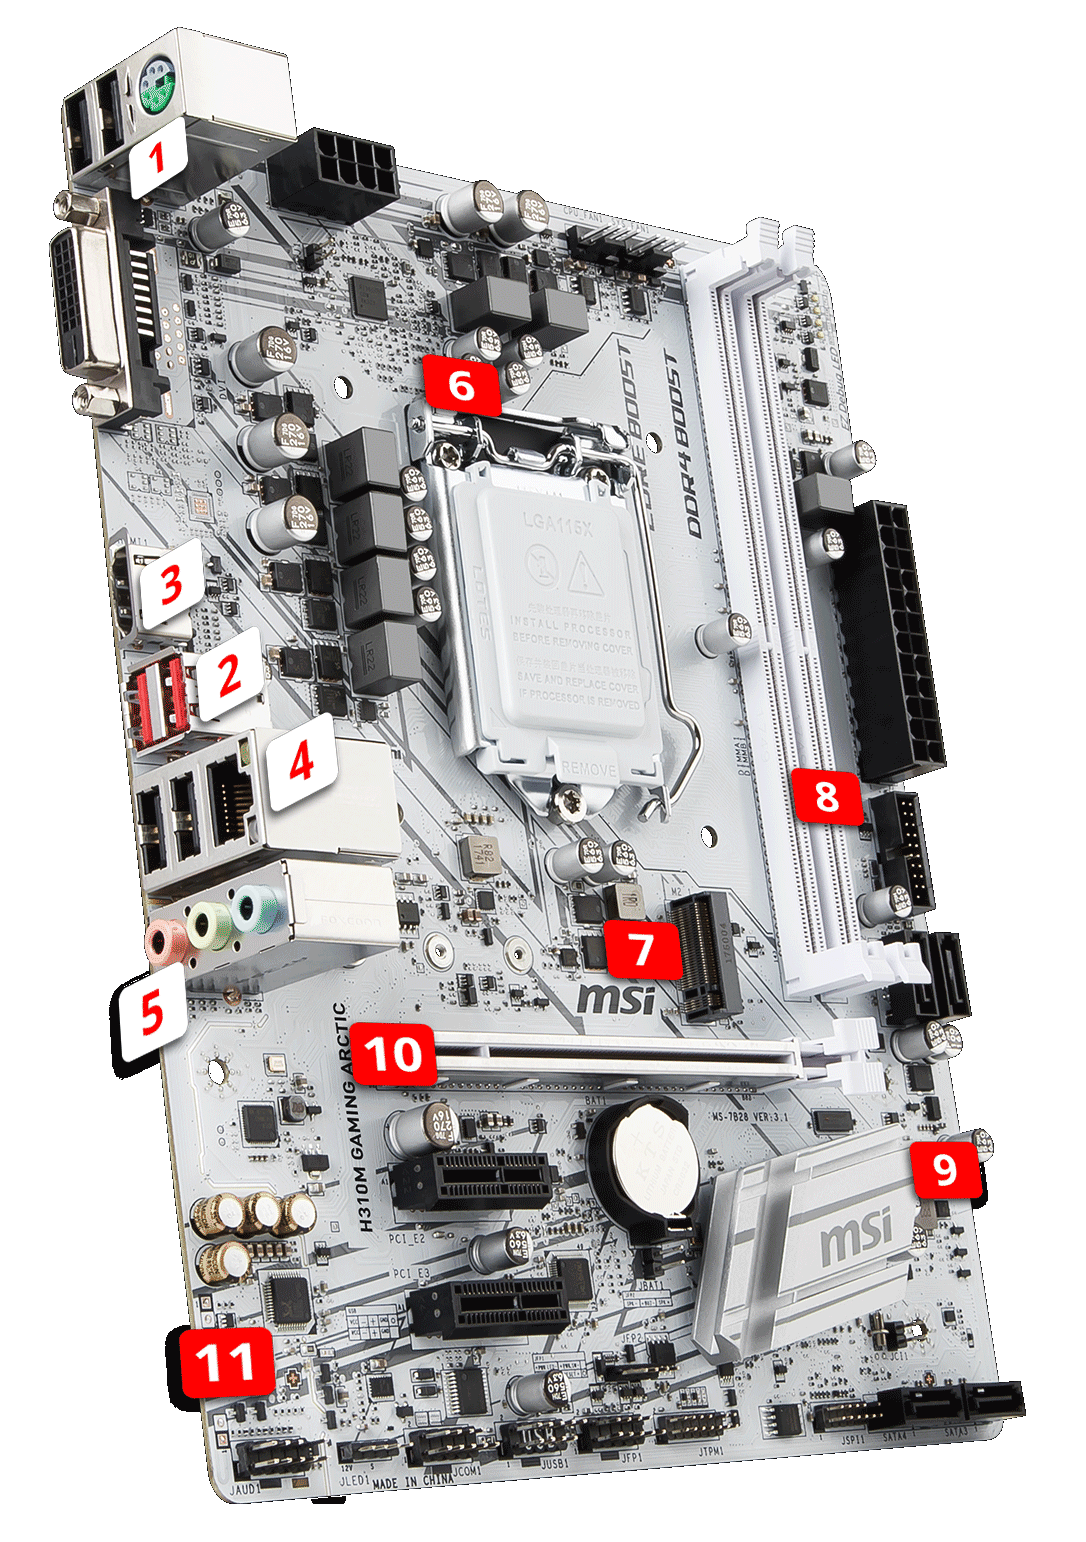 H310M GAMING ARCTIC | Motherboard - The world leader in